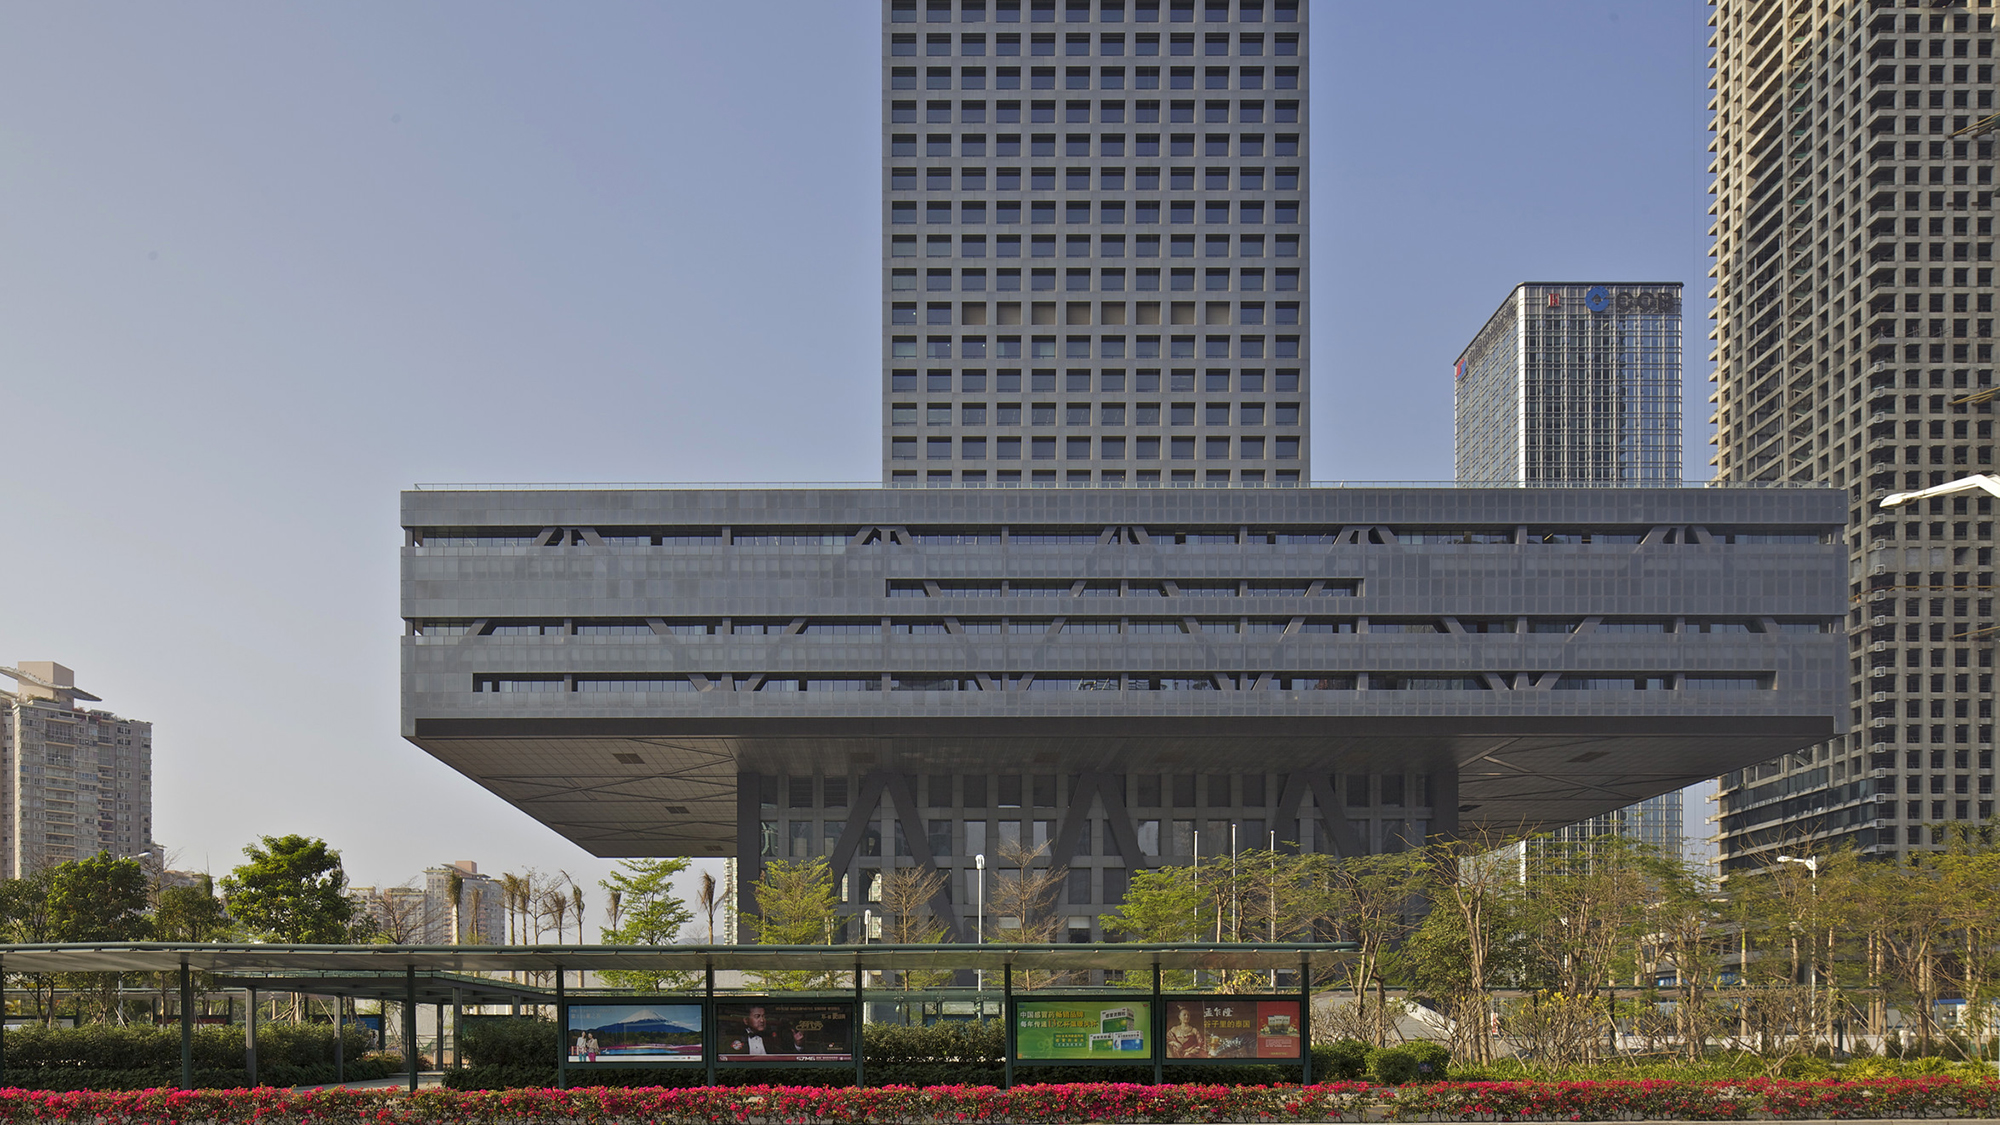 Ping An's financial centre sits near the OMA-designed Shenzen Stock exchange